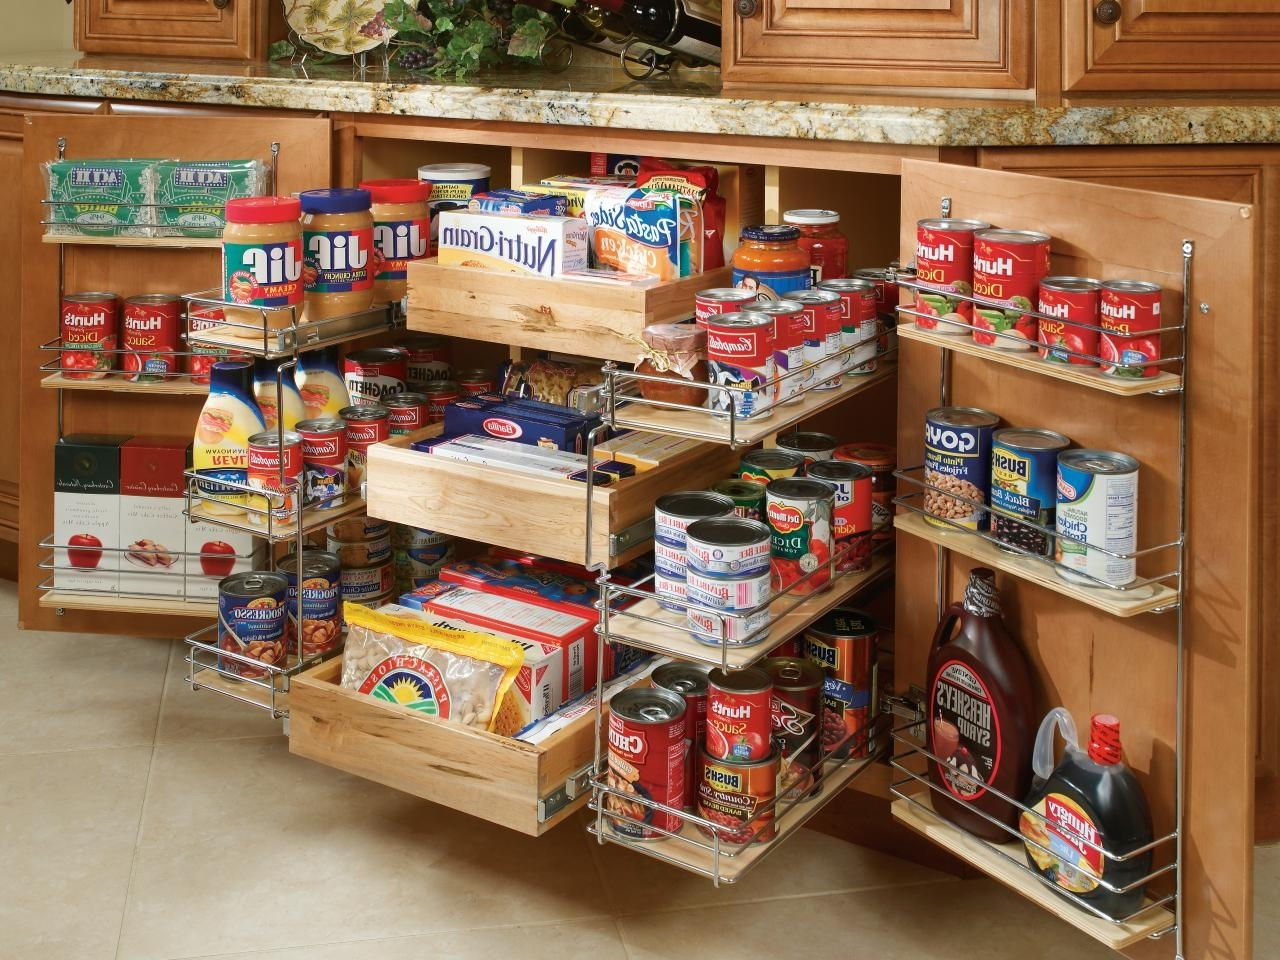 Pantry Cabinets And Cupboards: Organization Ideas And Options | Hgtv With Regard To Pantry Cabinets To Utilize Your Kitchen (Image 17 of 17)